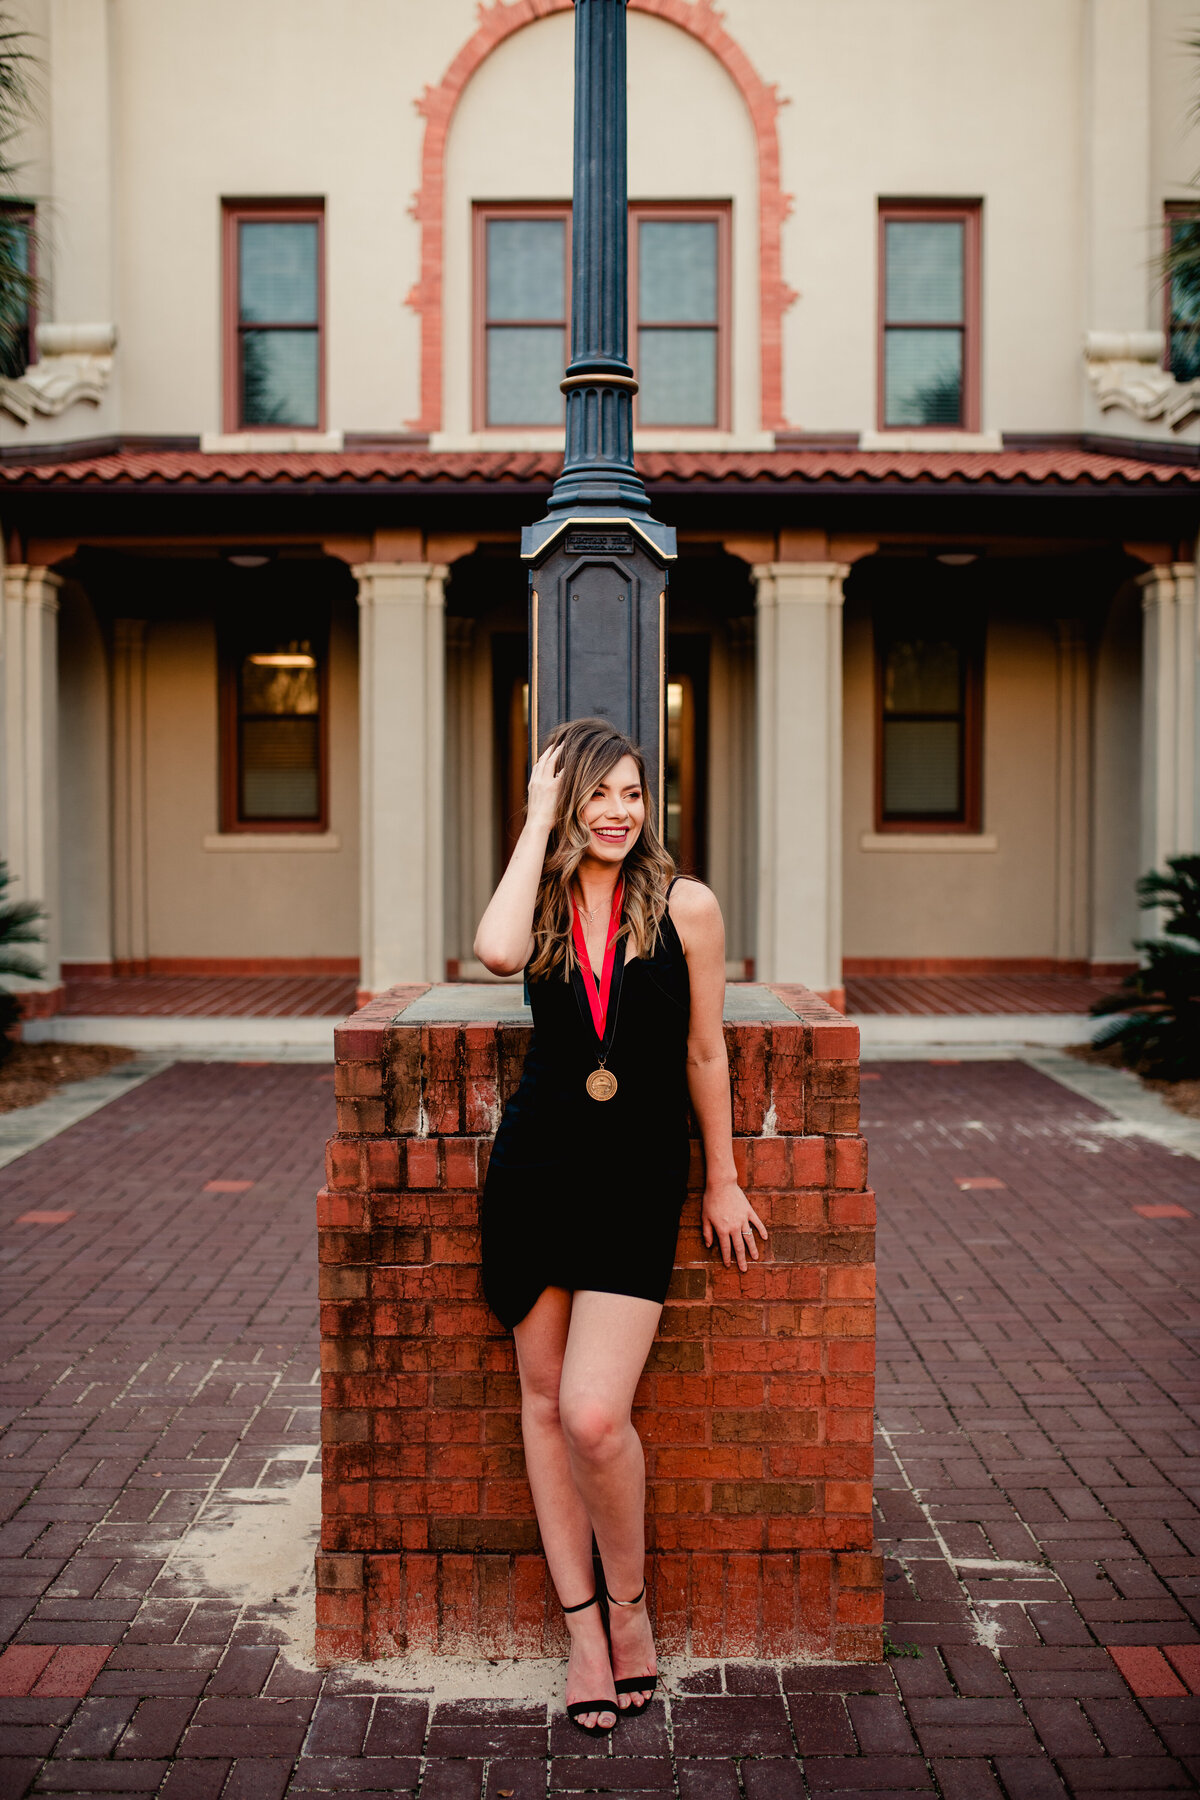 Valdosta State University grad pictures photographer